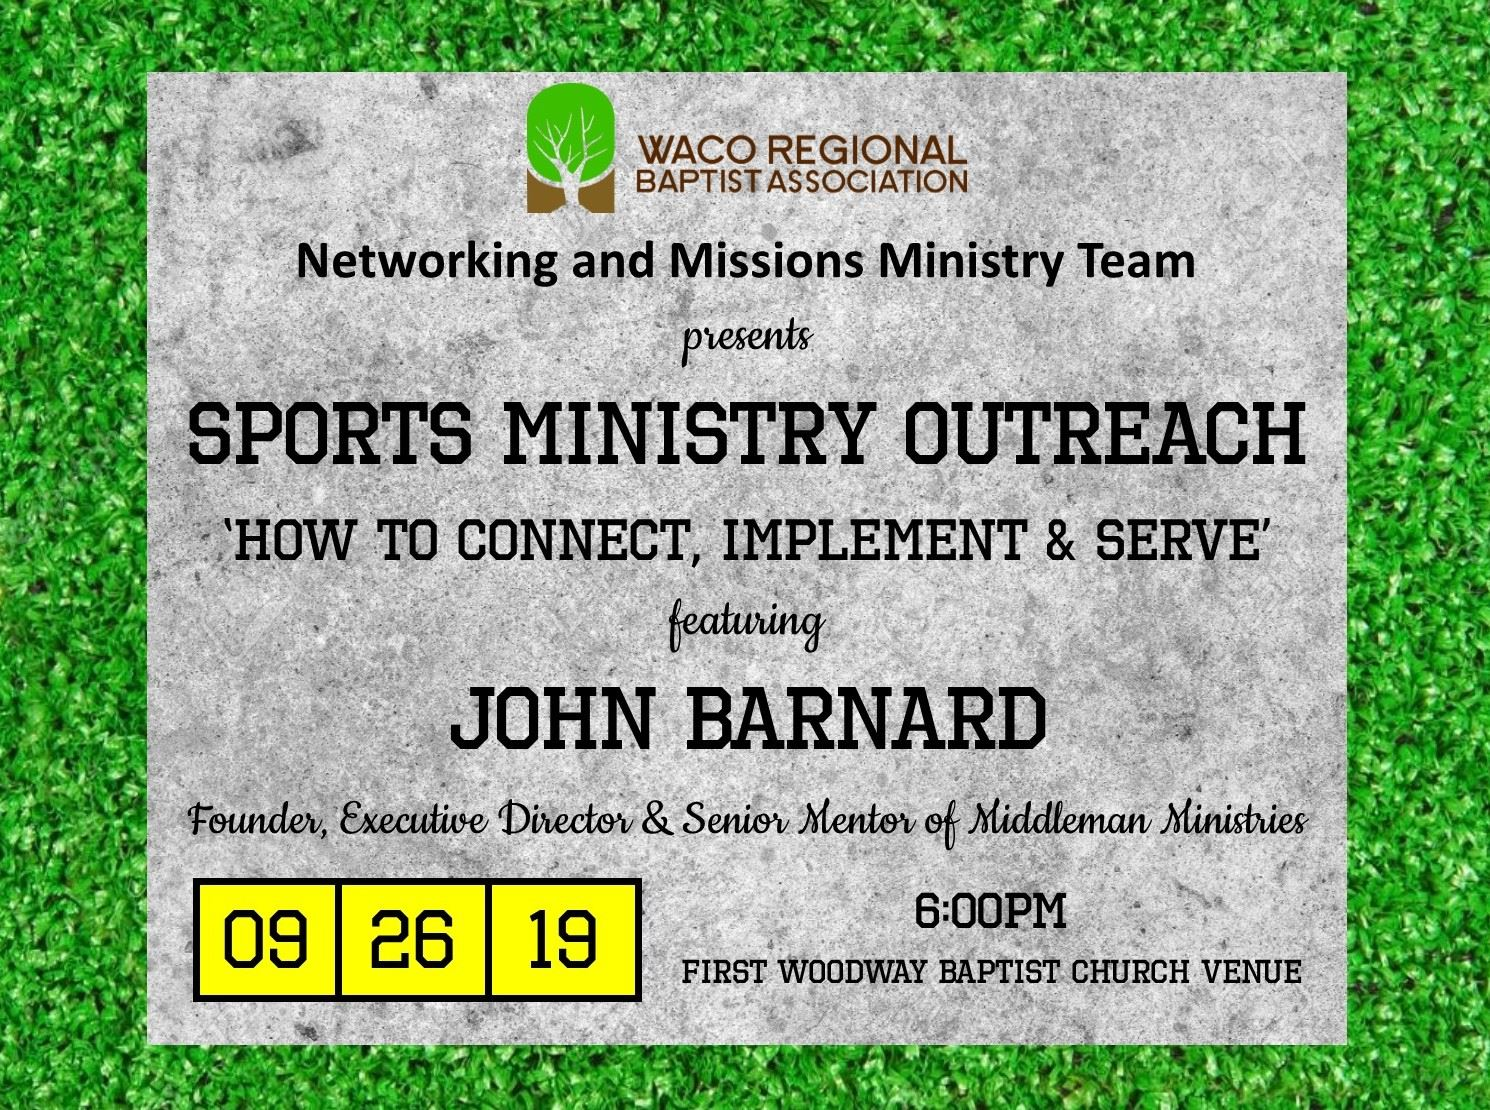 Waco Regional Baptist Association Networking and Ministry Missions Team presents: Sports Ministry Ou